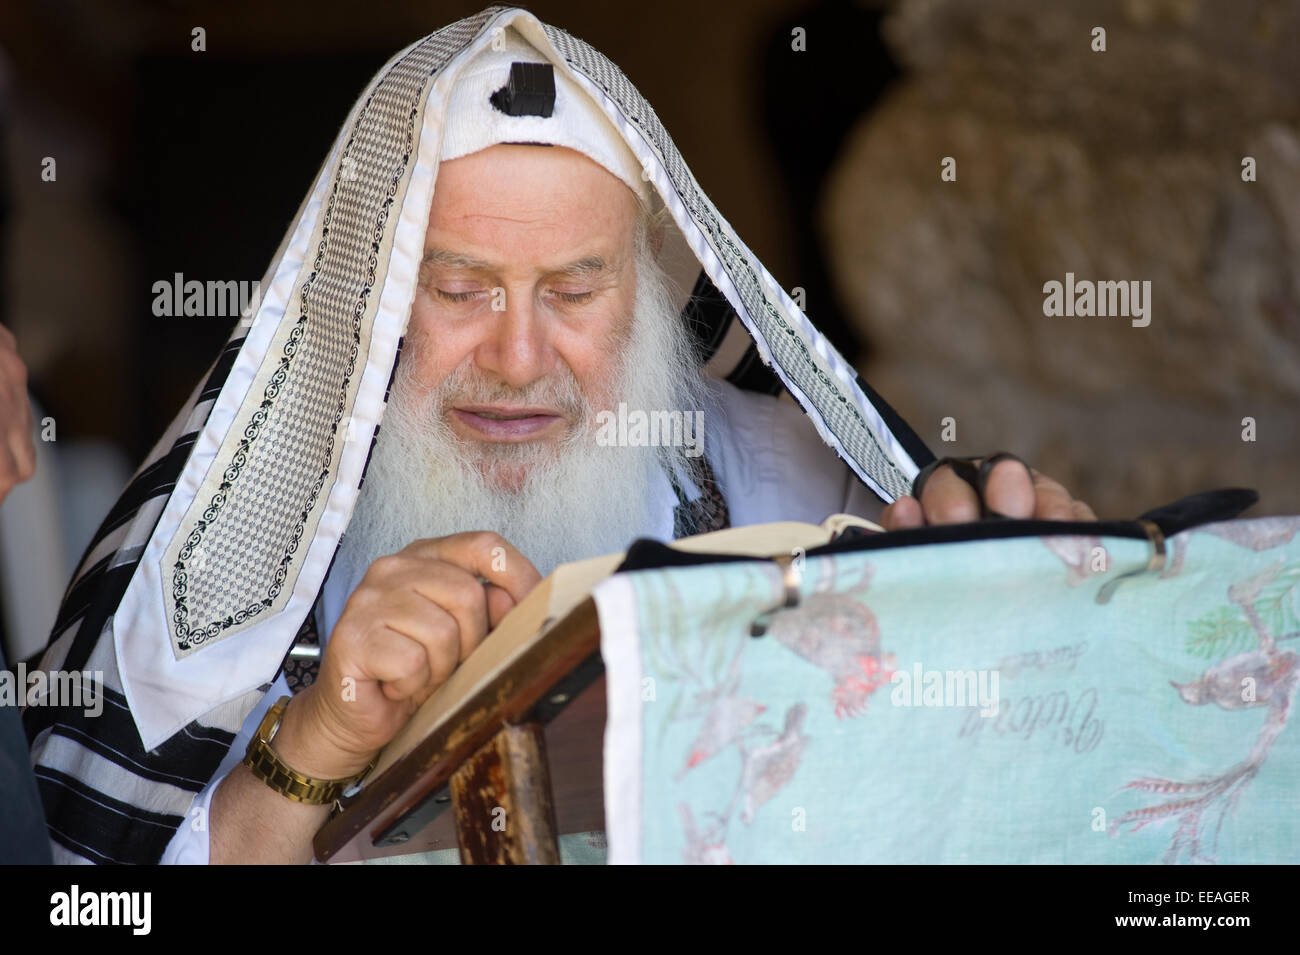 JERUSALEM, ISRAEL - OCT 06, 2014: An old jewish man is reading in the torah near the wailing wall in Jerusalem - Stock Image